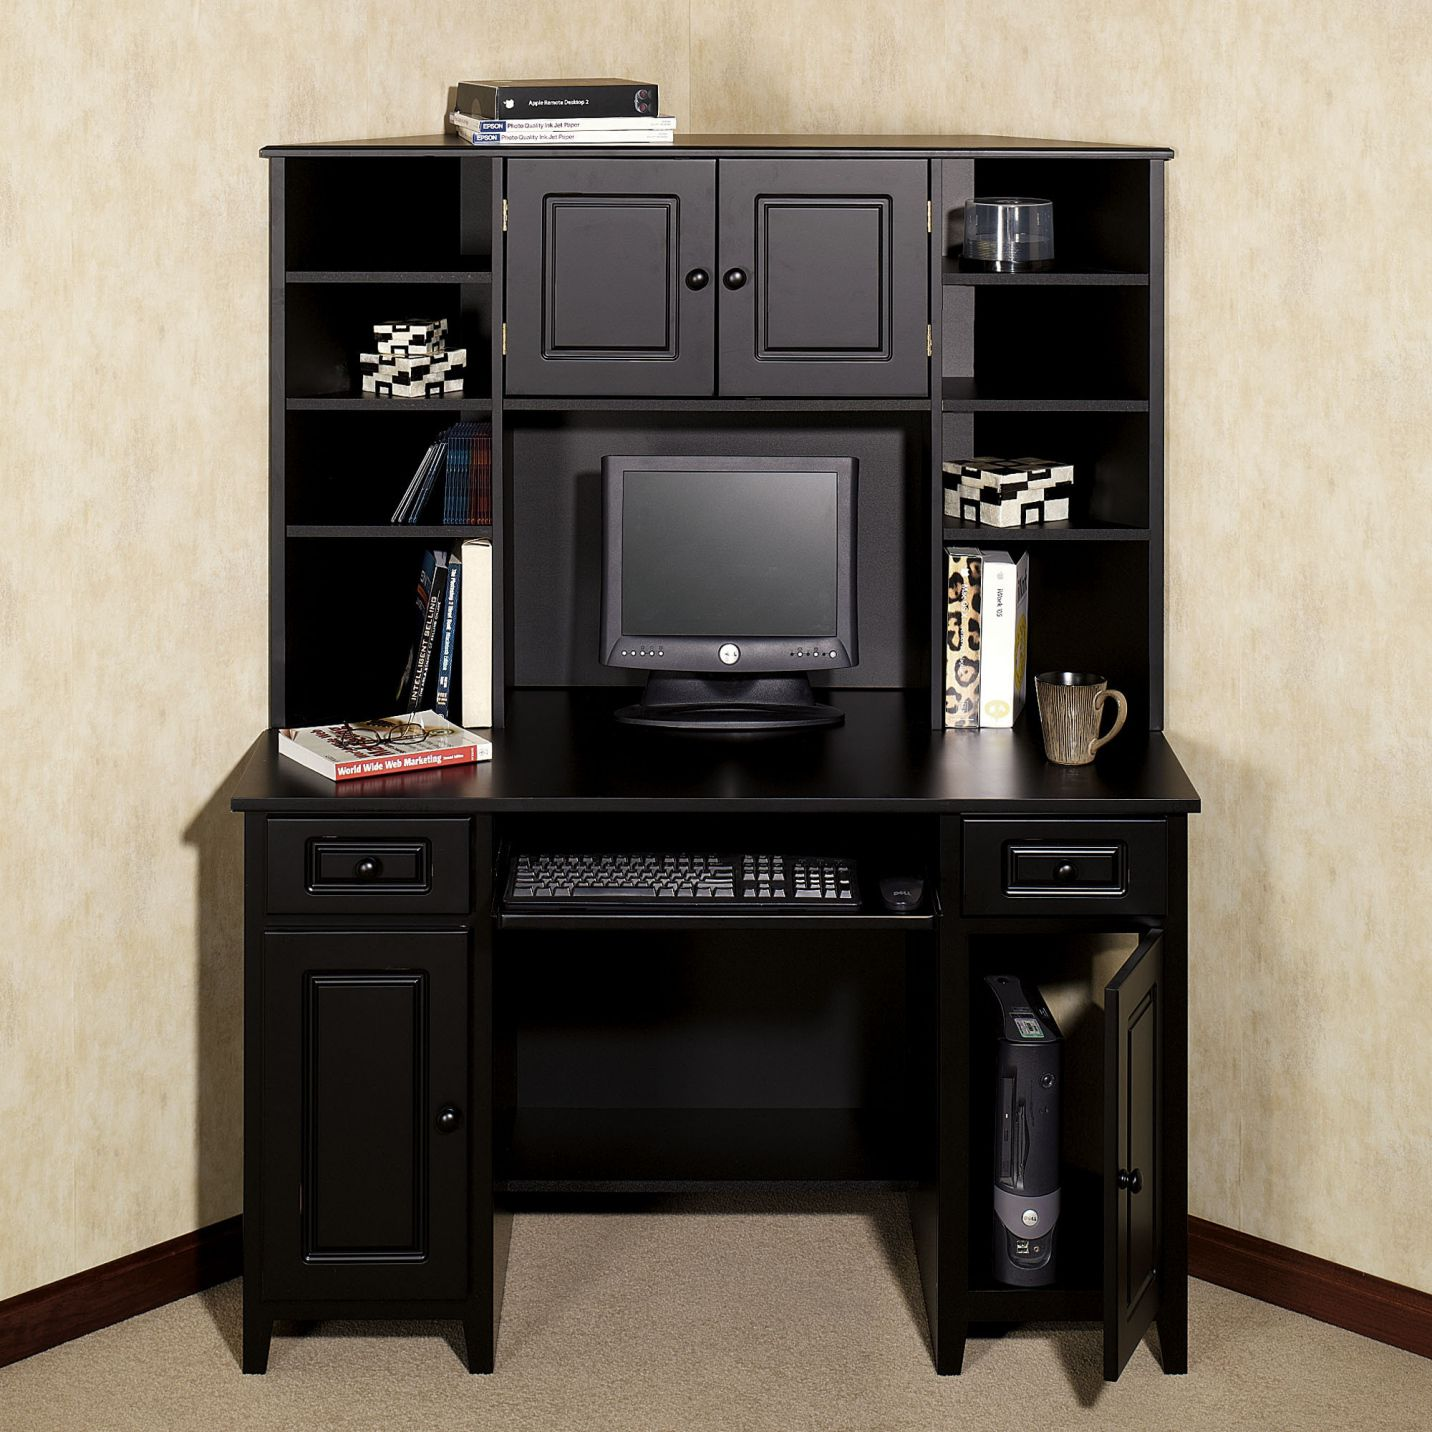 Bon Black Computer Desk Hutch   Home Office Furniture Ideas Check More At  Http://michael Malarkey.com/black Computer Desk Hutch/